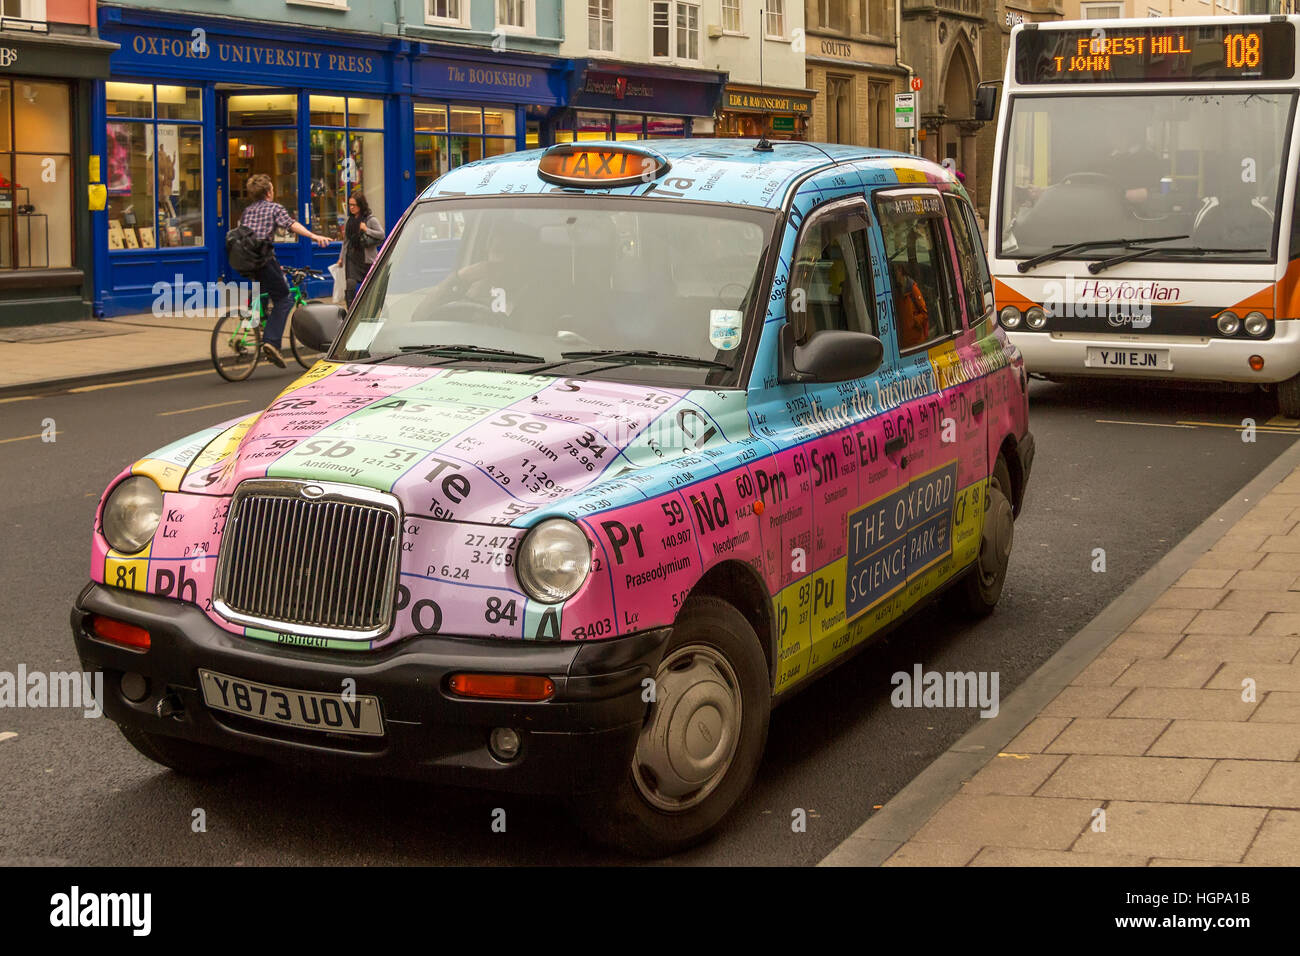 Oxford taxi displaying periodic table oxfordshire uk stock photo oxford taxi displaying periodic table oxfordshire uk urtaz Images